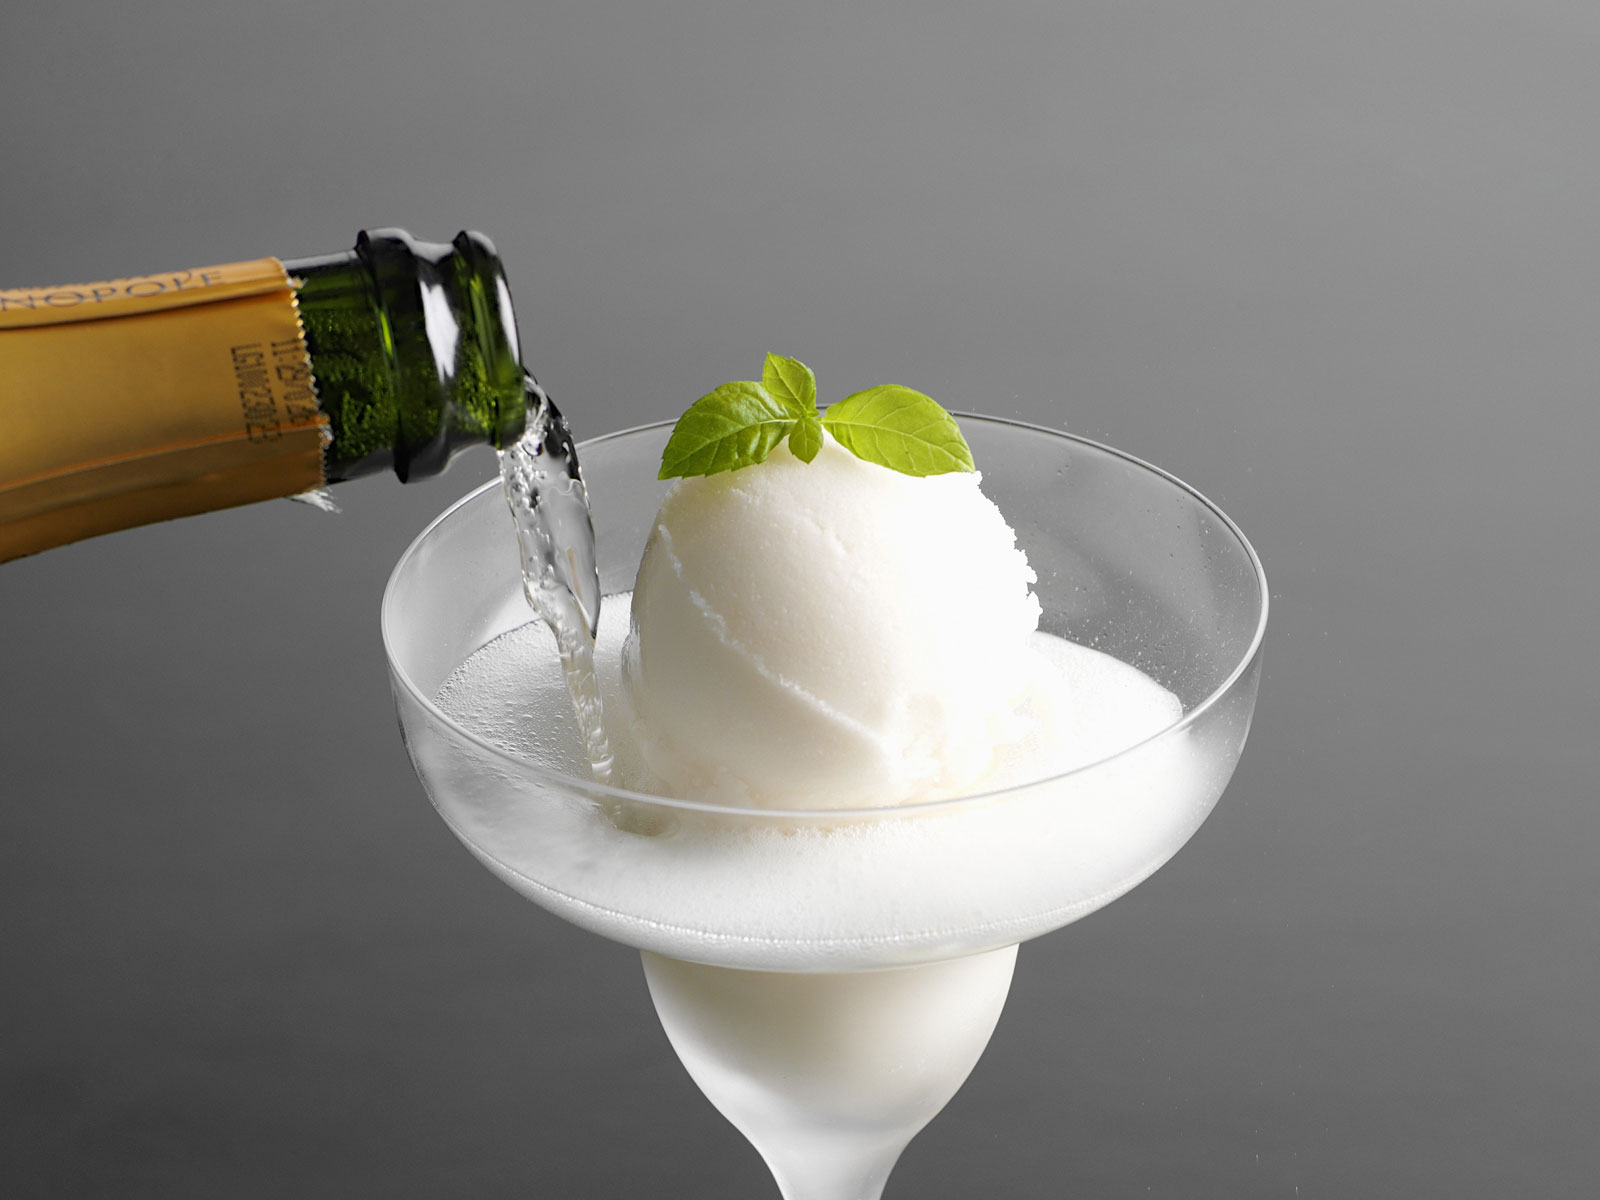 Champagne sorbet in a glass.